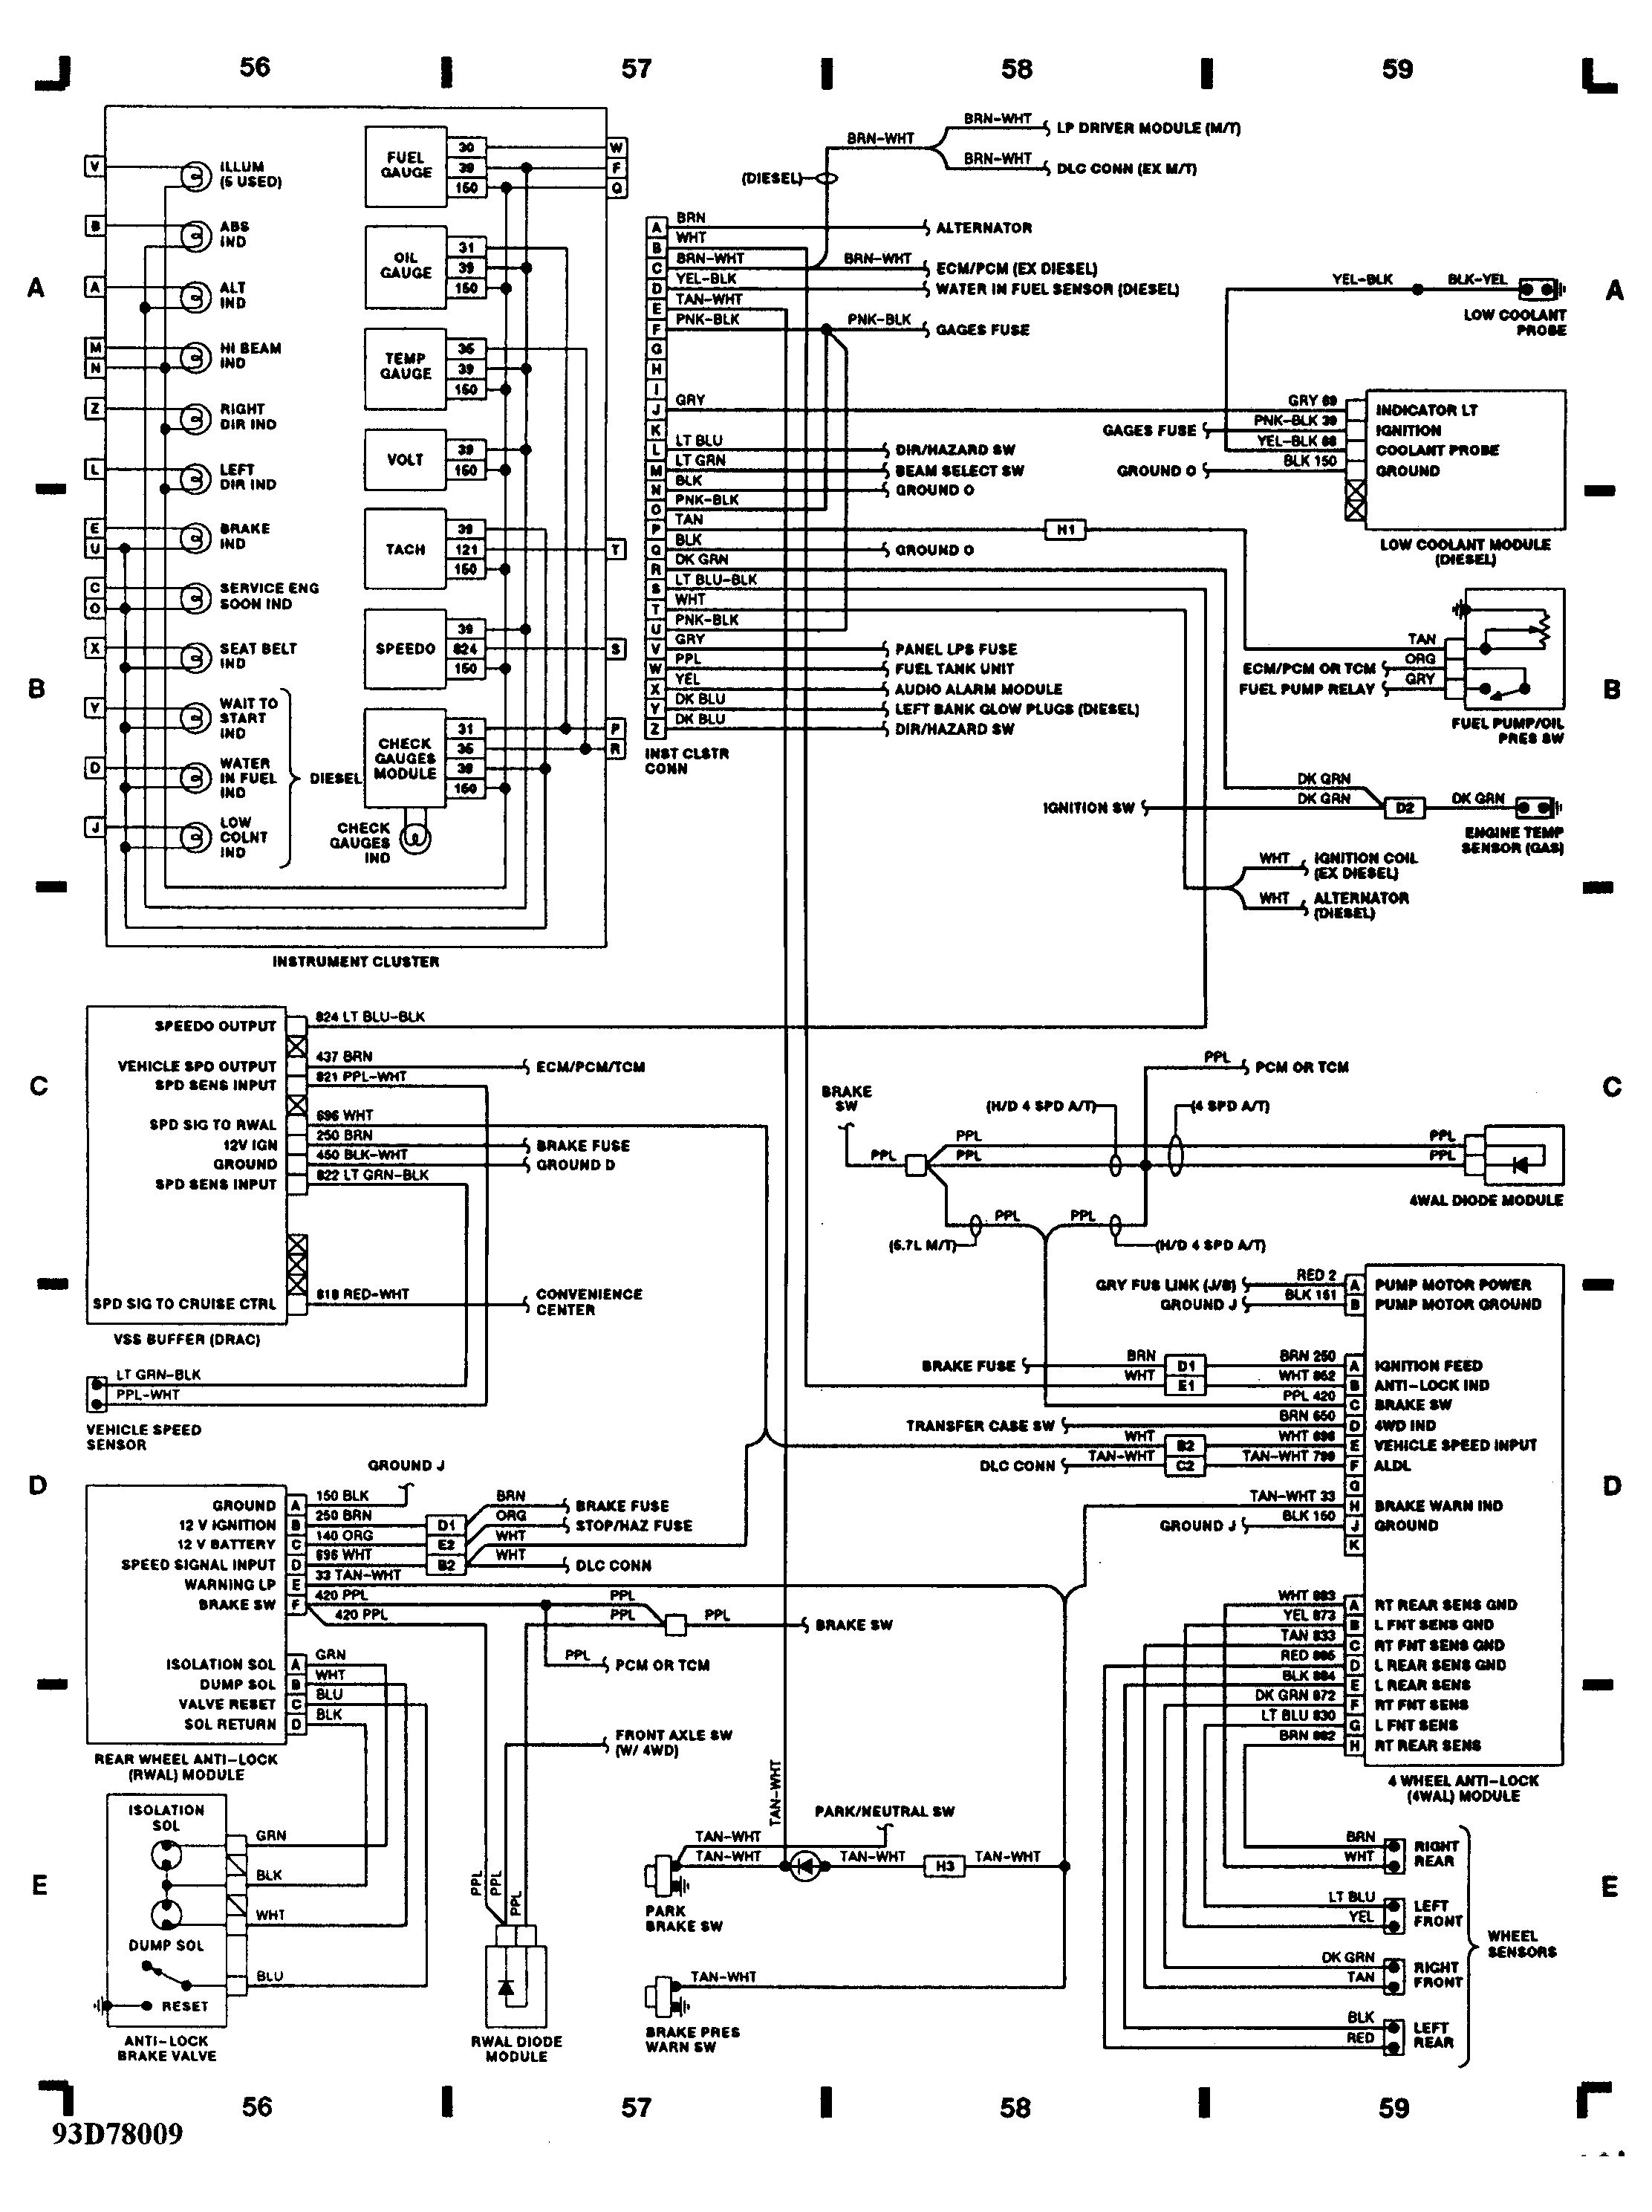 Gm 6 0 Engine Head Diagram | Wiring Diagram  Engine Wiring Diagram on